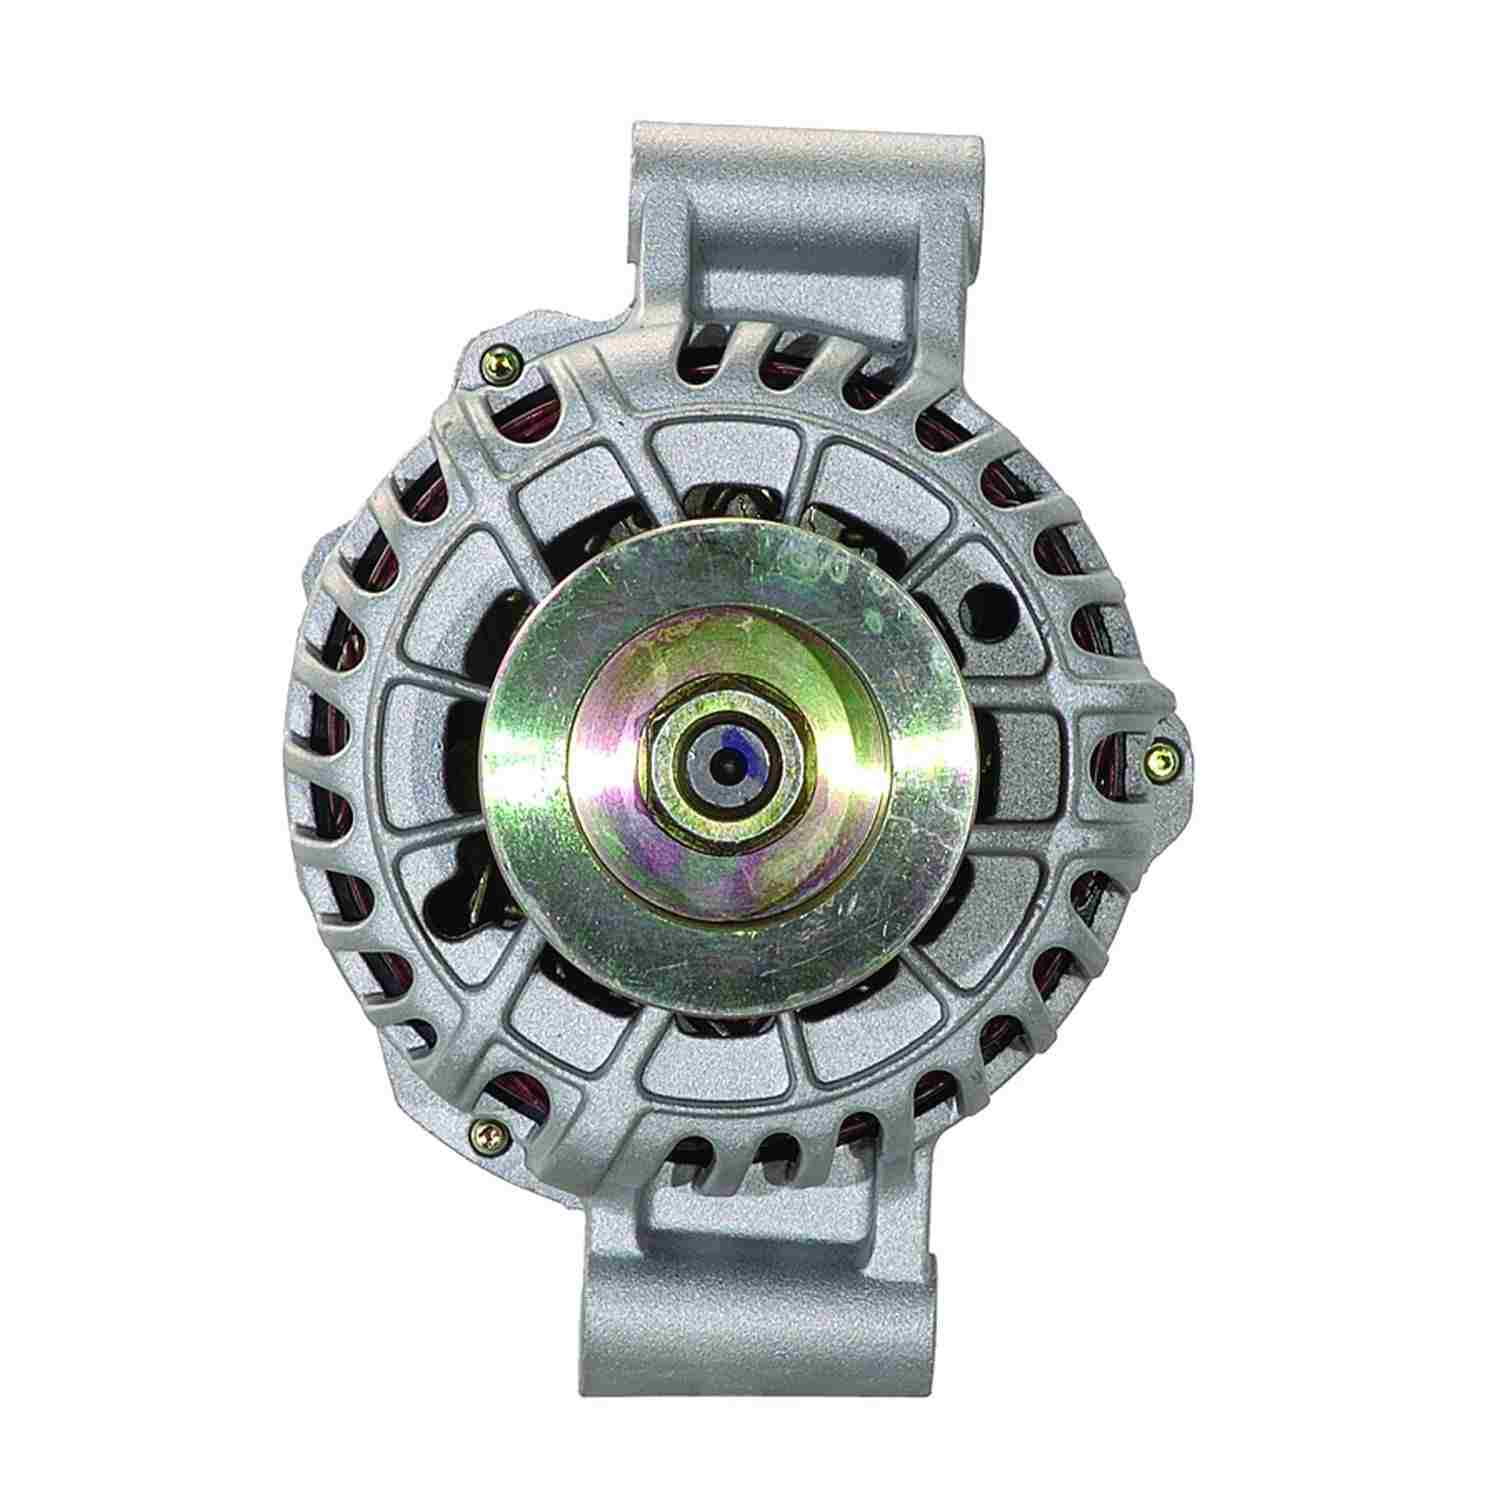 ACDELCO GOLD/PROFESSIONAL - Alternator - DCC 335-1158